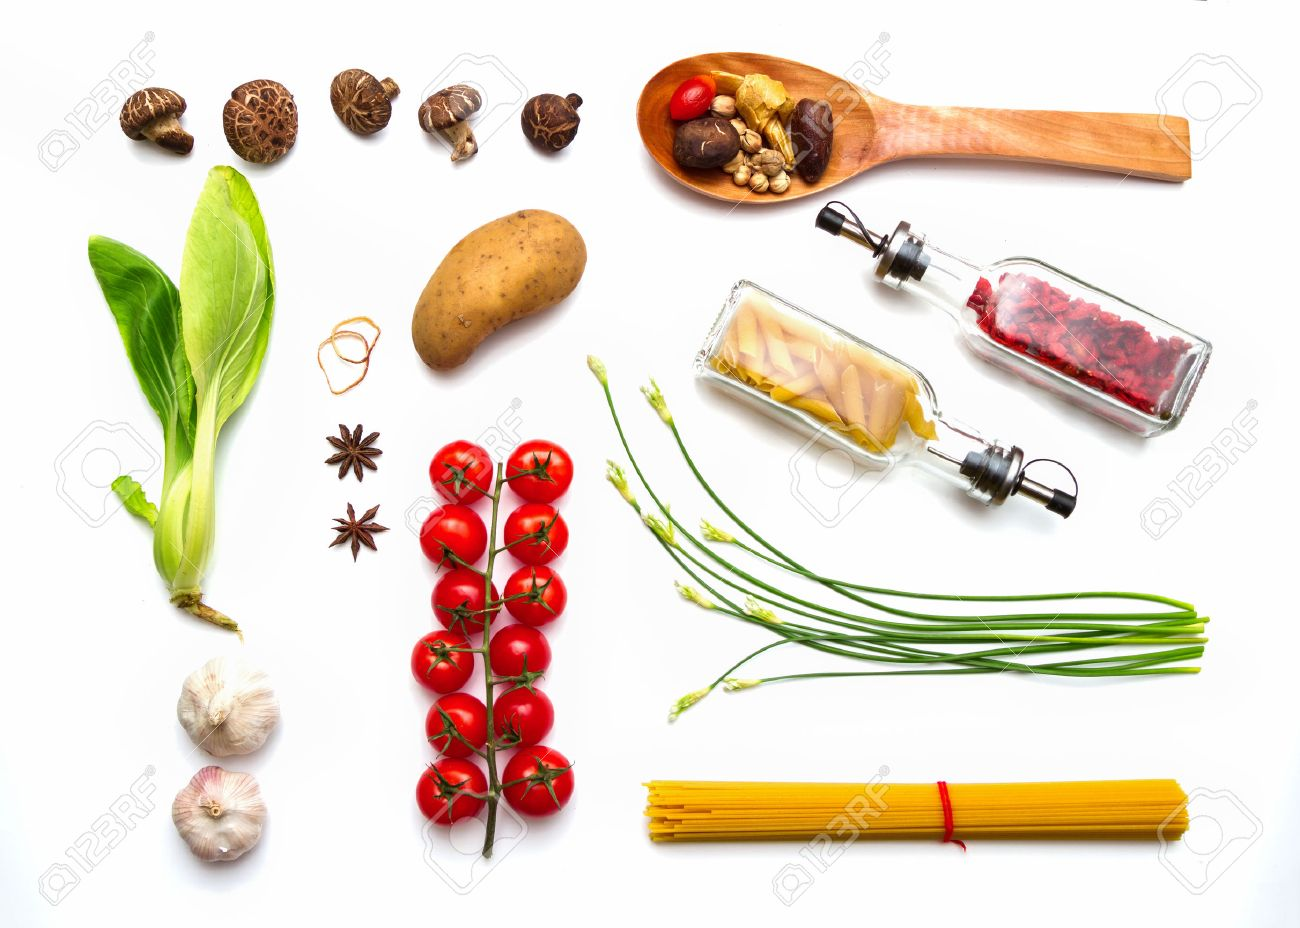 Food and spices herb for cooking background and design. Stock Photo - 42071225